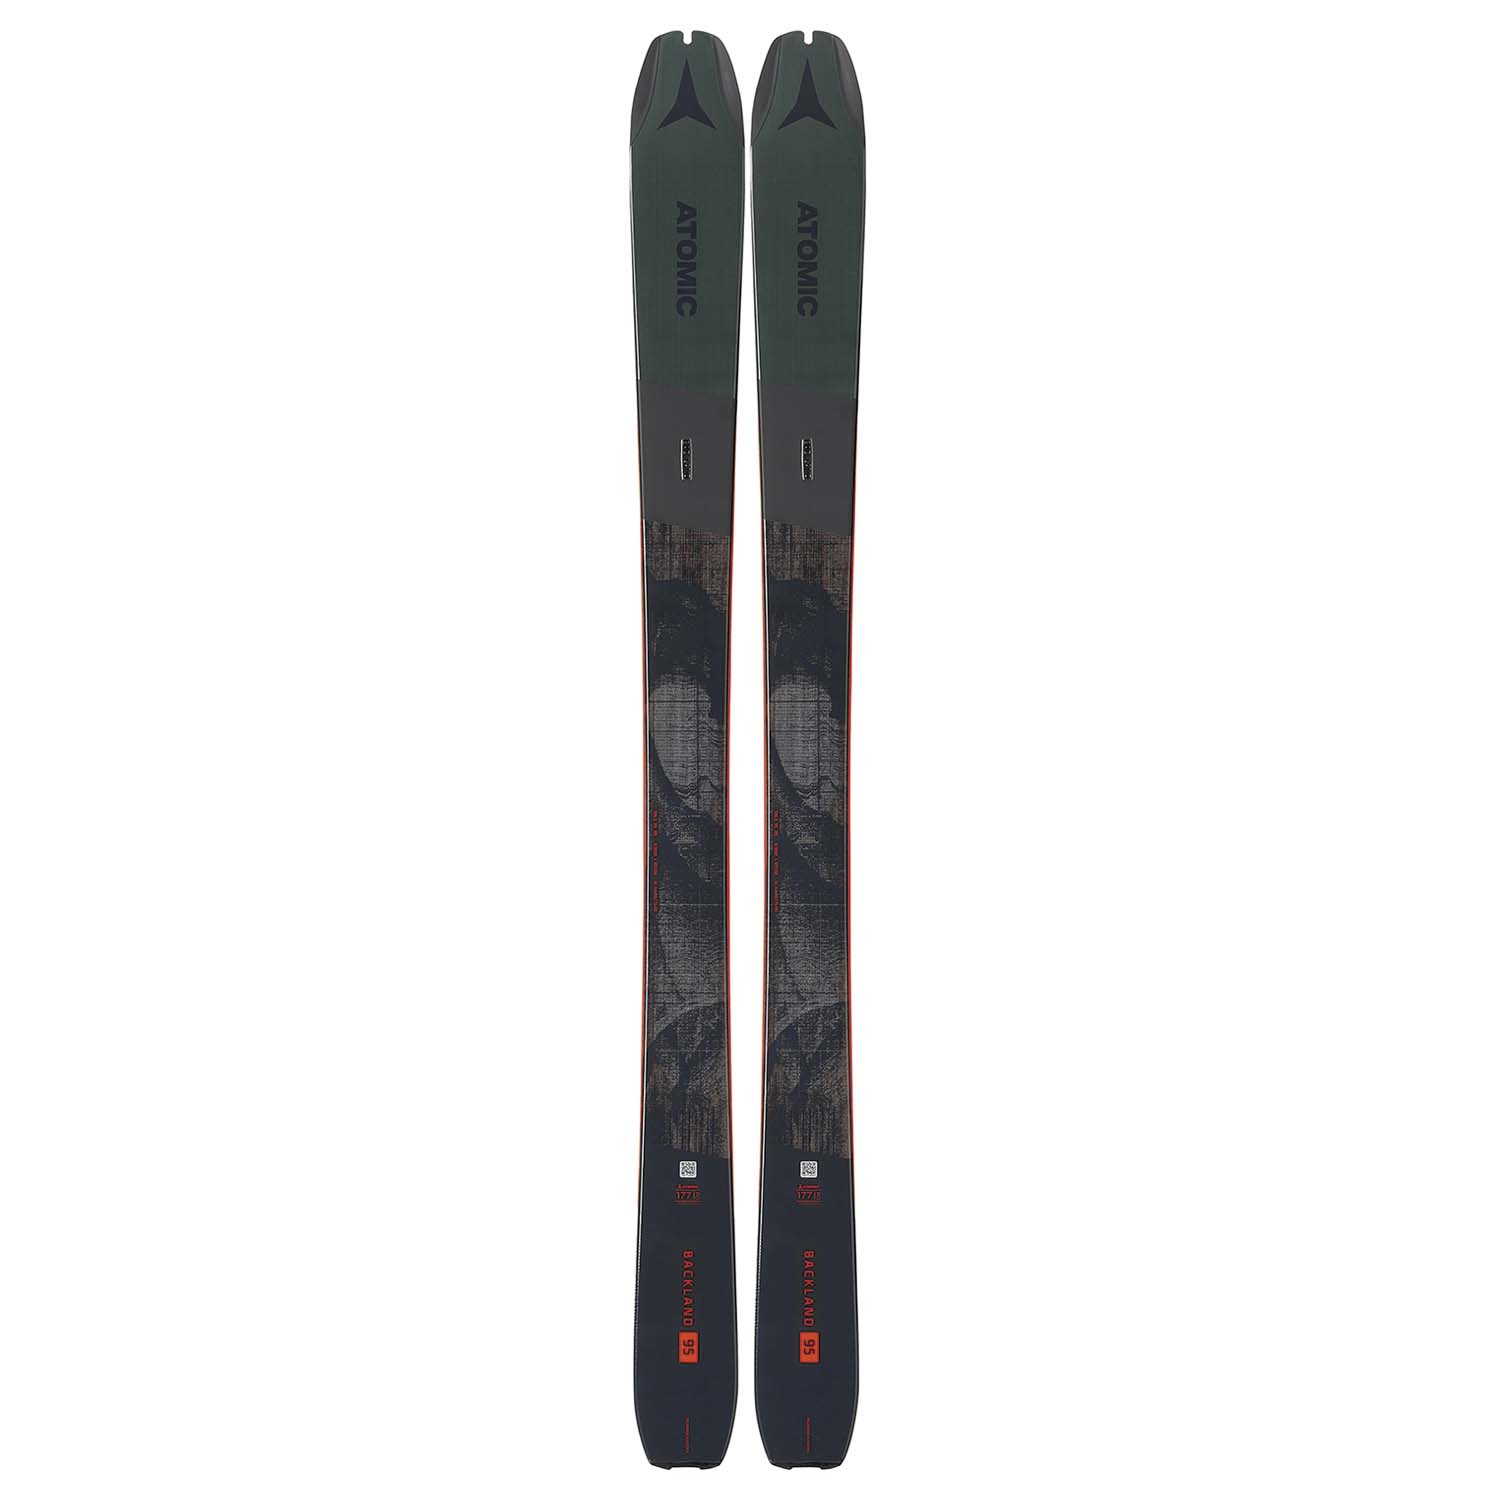 Atomic Backland 95 Ski Hybrid Skin 95 2020